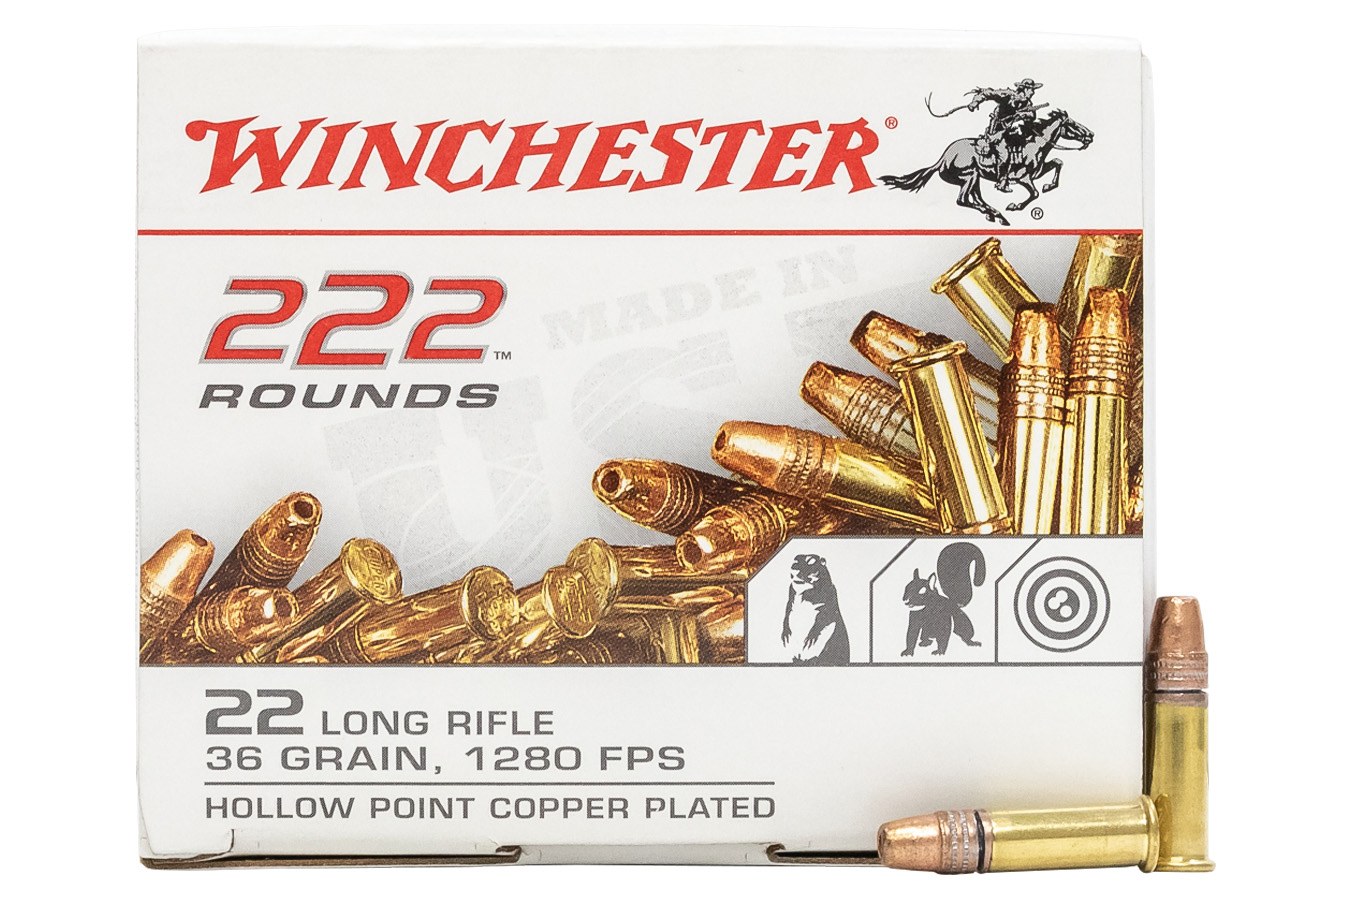 WINCHESTER AMMO 22 LR 36 GR COPPER PLATED HP 222 RDS